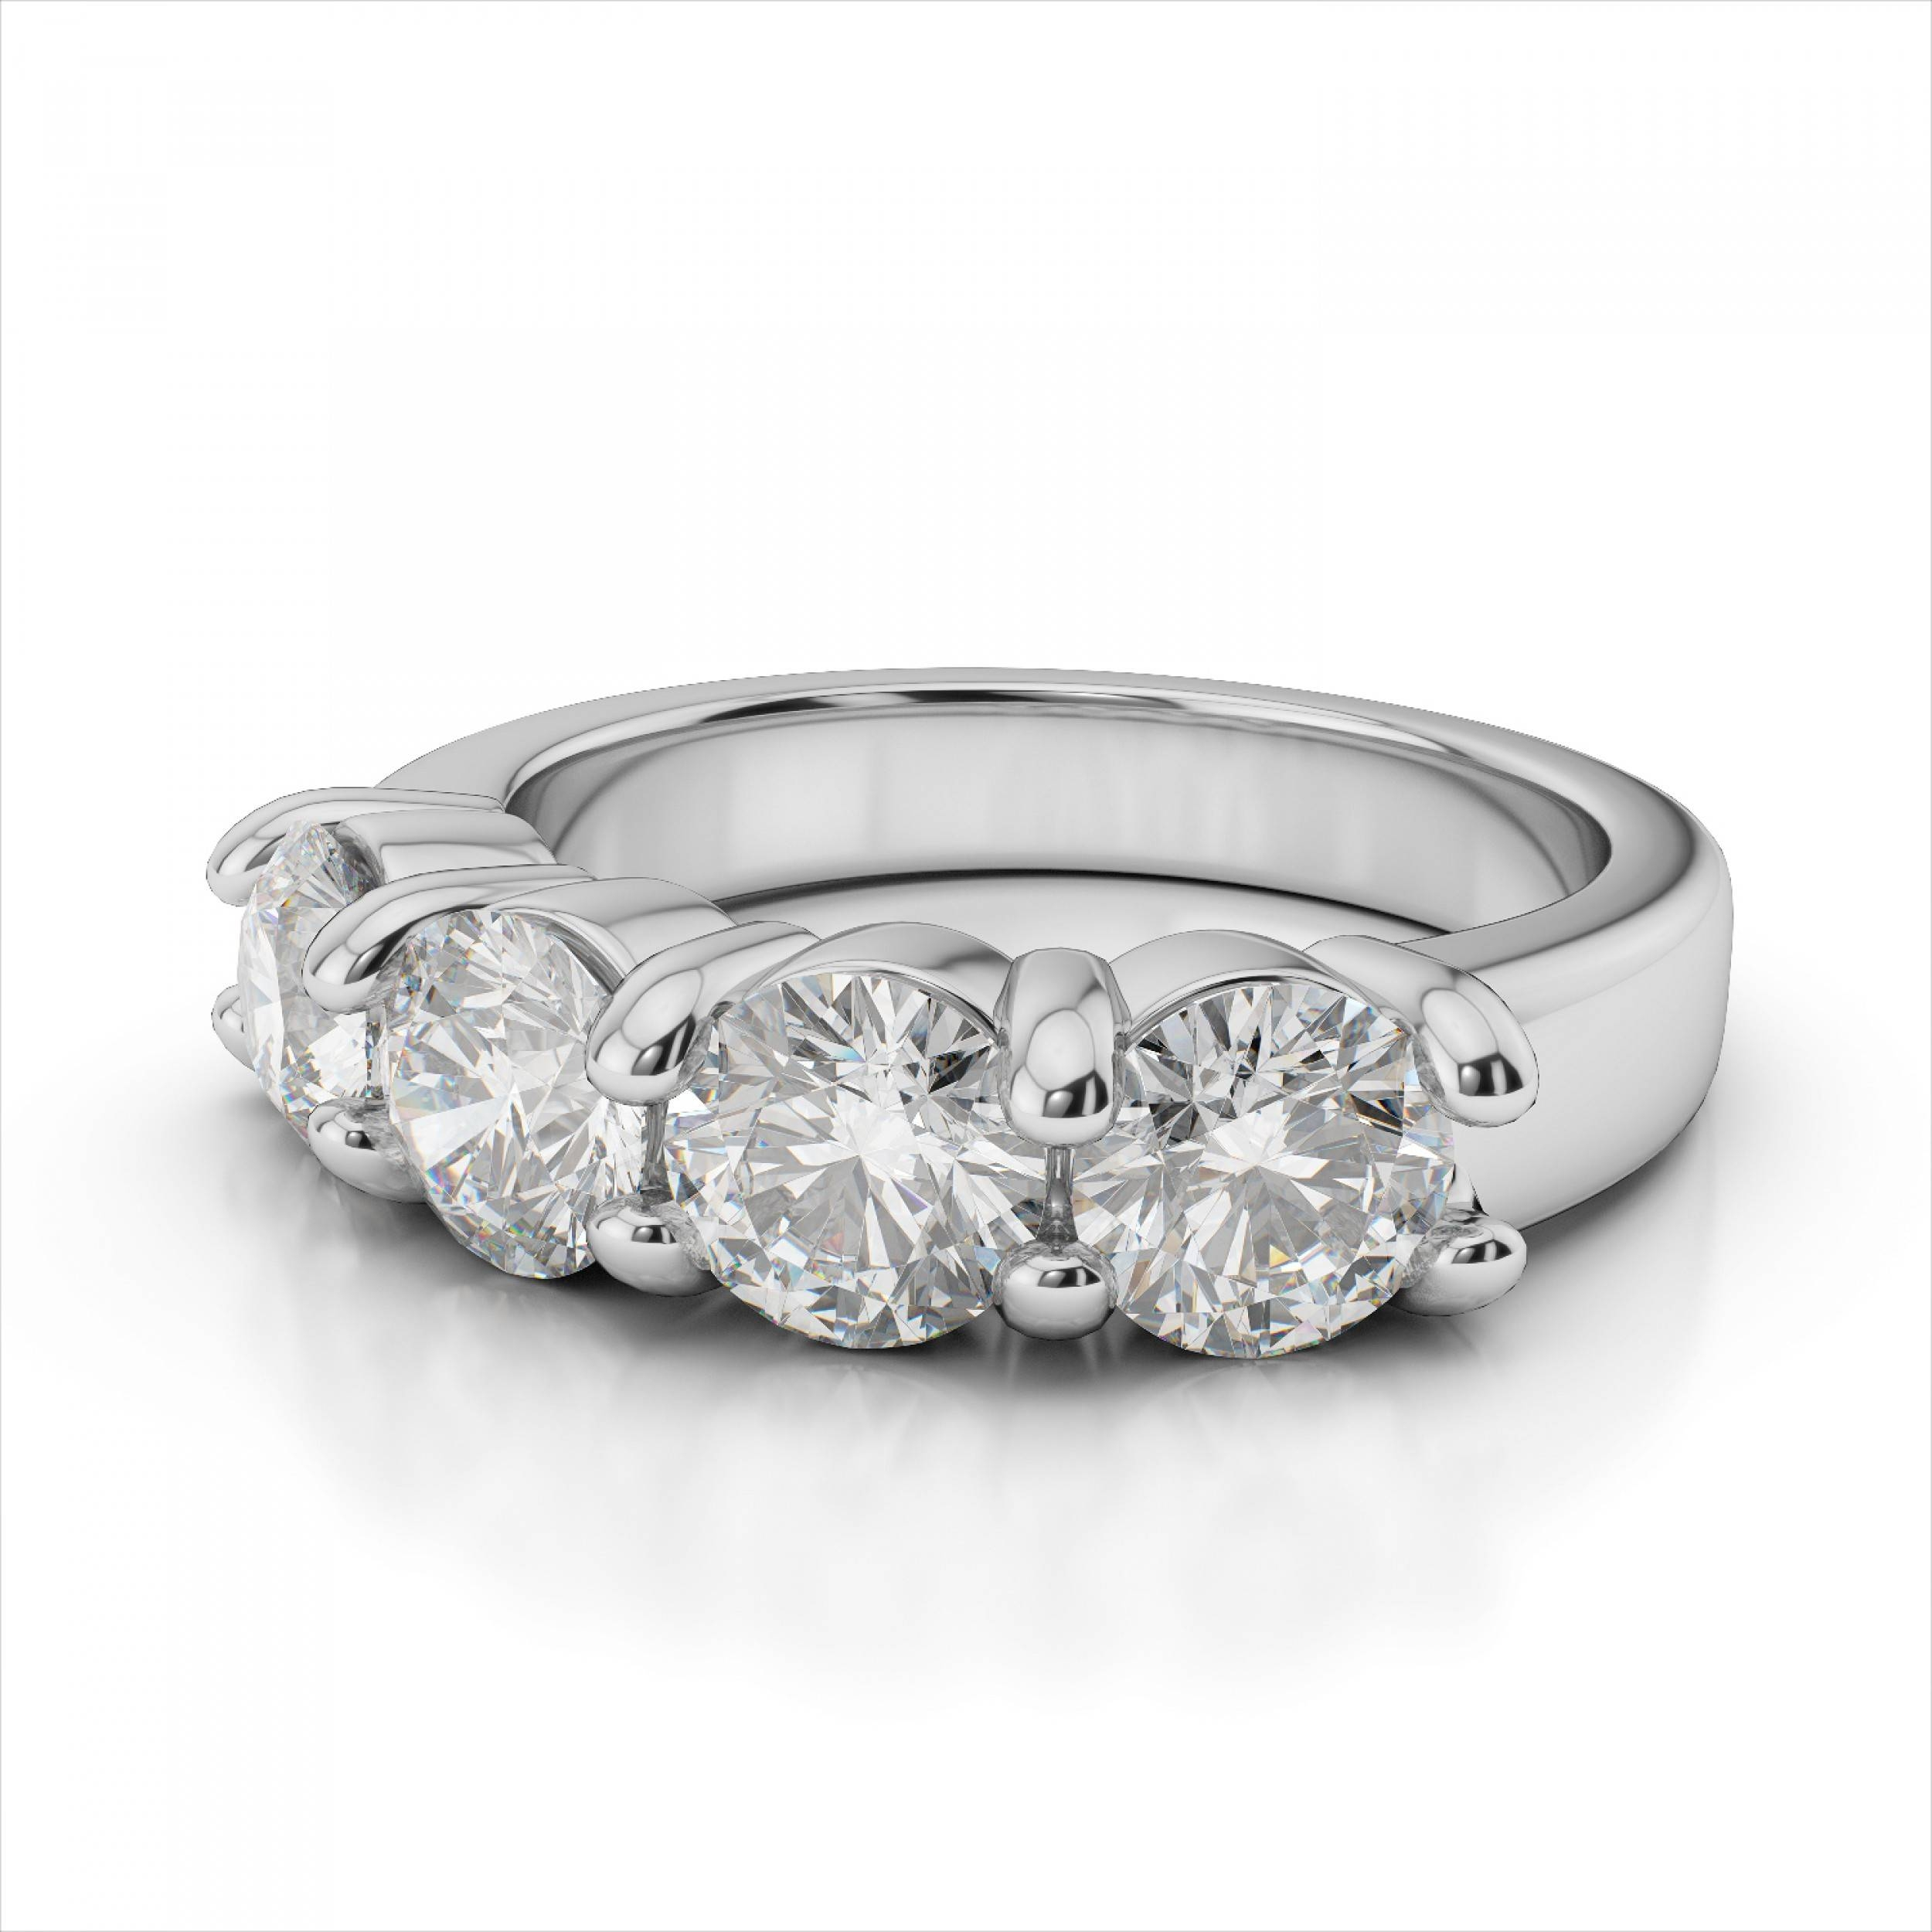 Wedding Rings : 3 Stone Anniversary Ring Estate Anniversary Rings Regarding Most Up To Date 5 Stone Diamond Anniversary Rings (View 11 of 25)